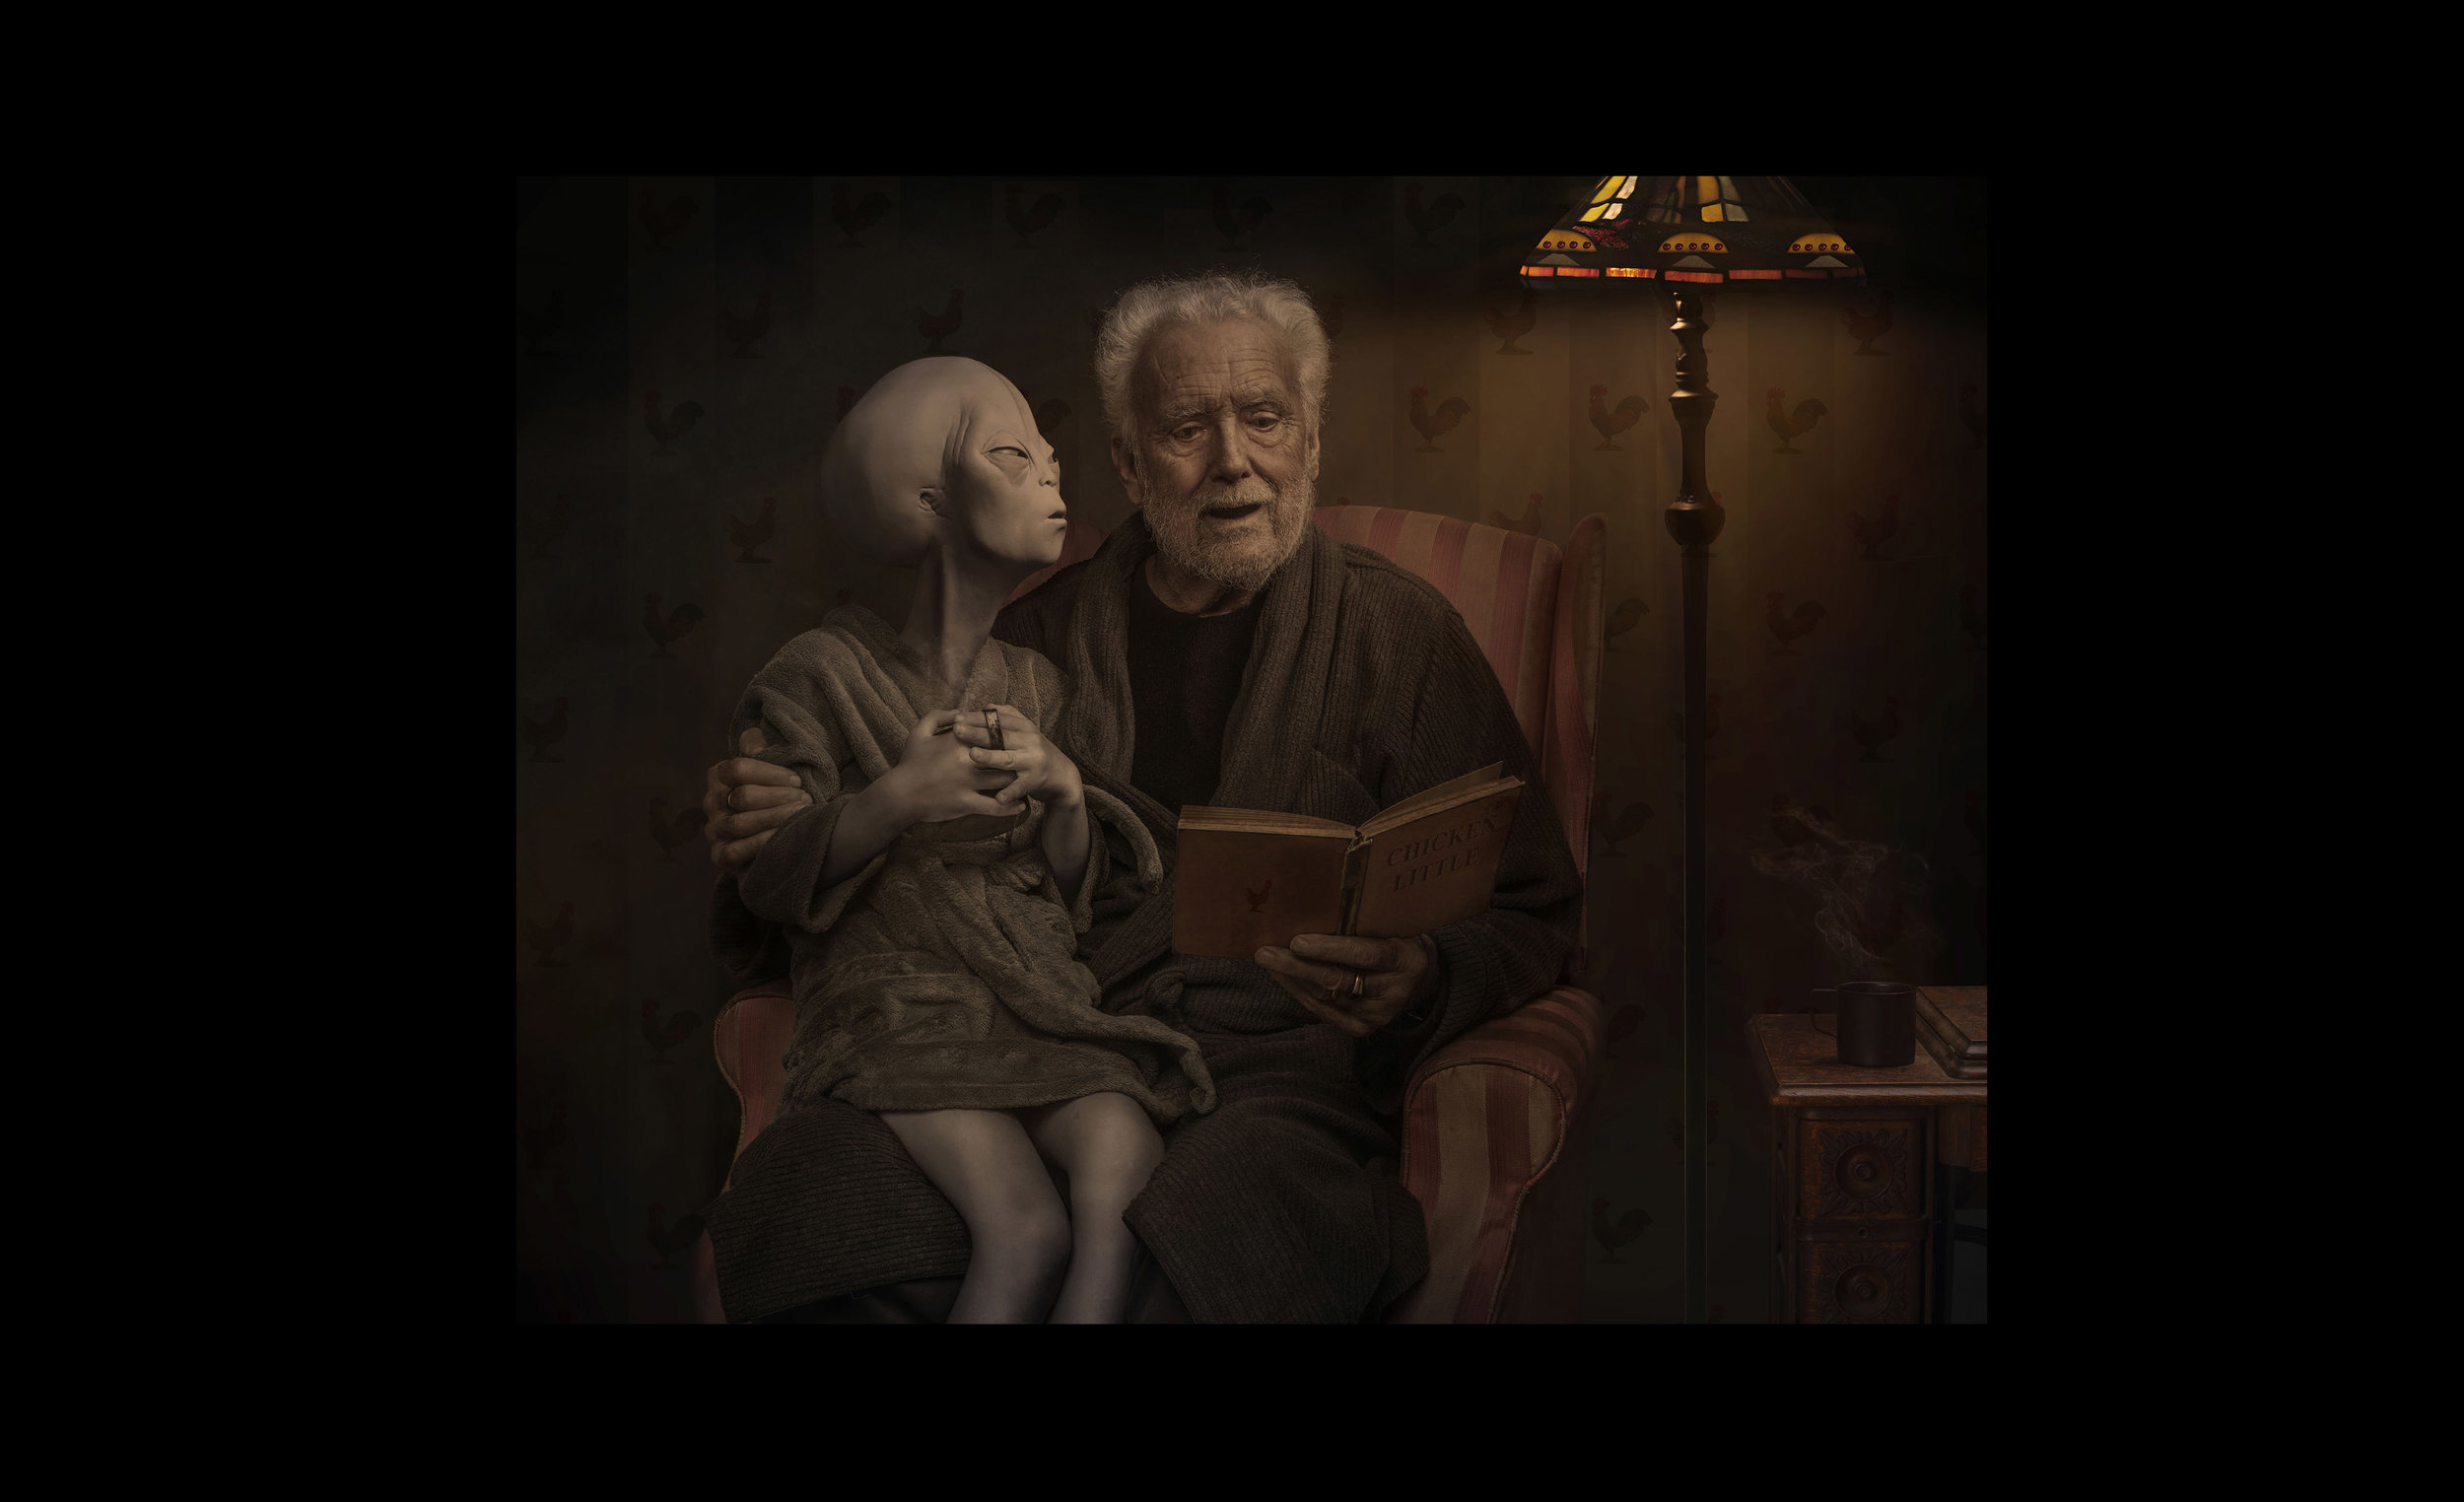 Illustrative Photography - The Alien and the Farmer. Part 3